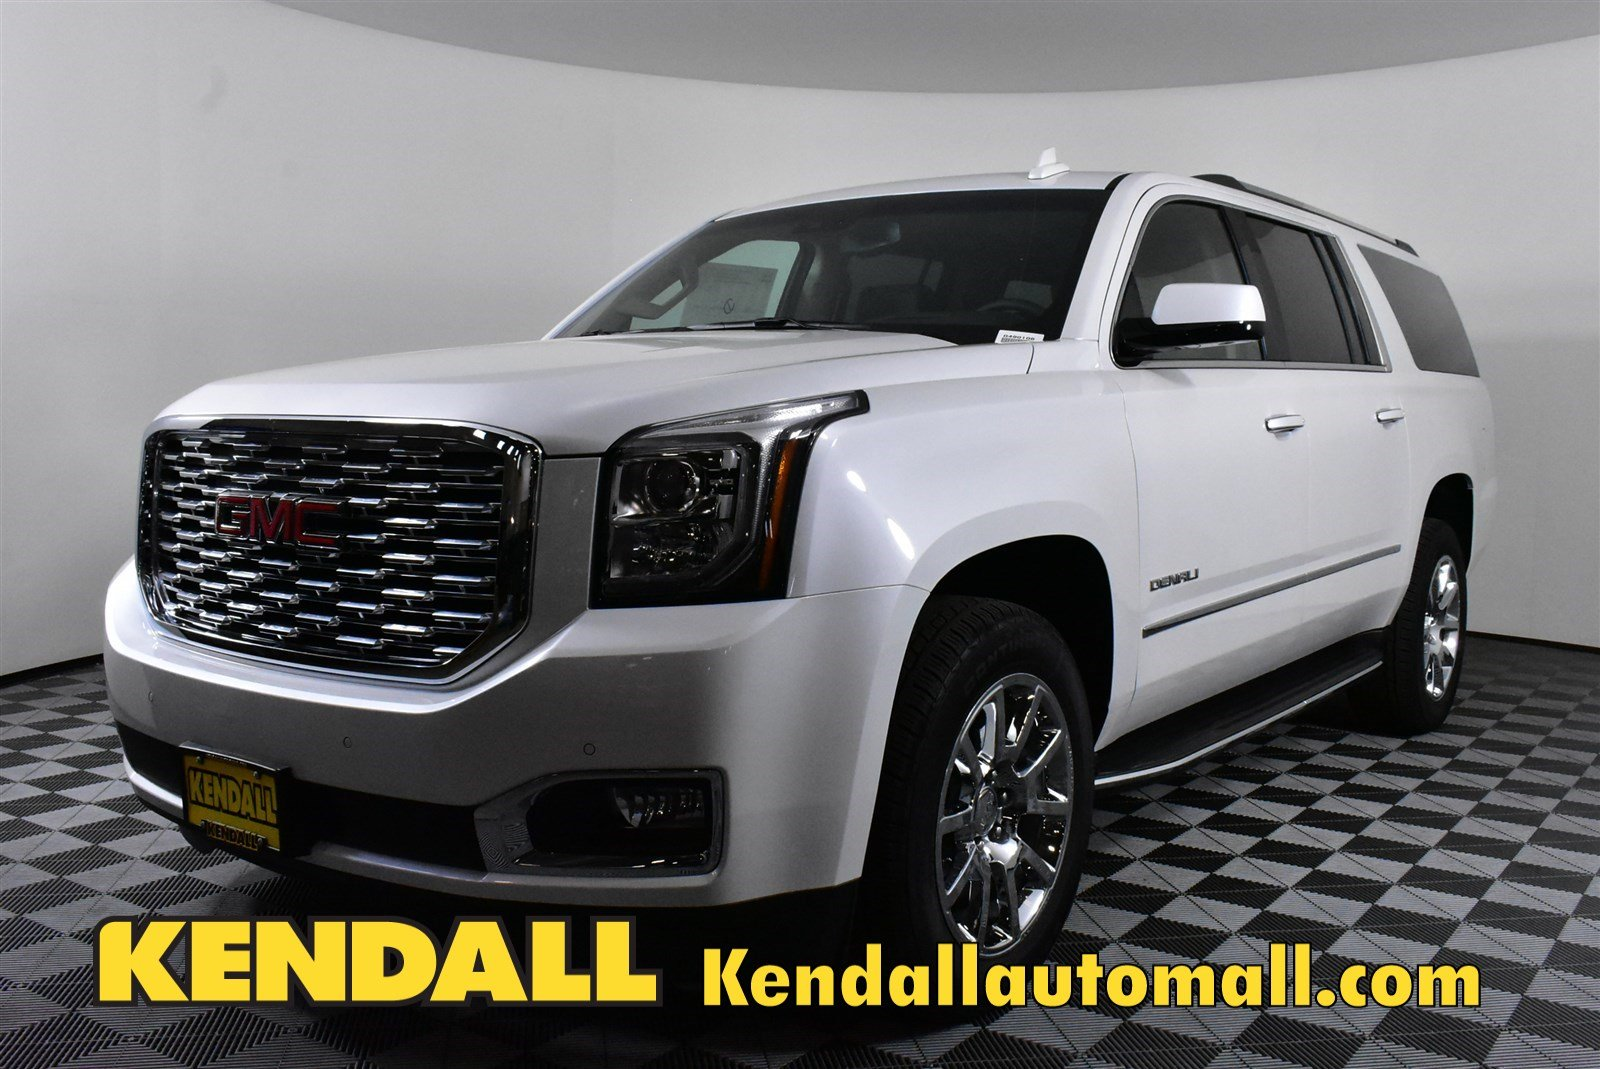 New 2019 Gmc Yukon Xl Denali 4wd In Nampa D490106 Kendall At The